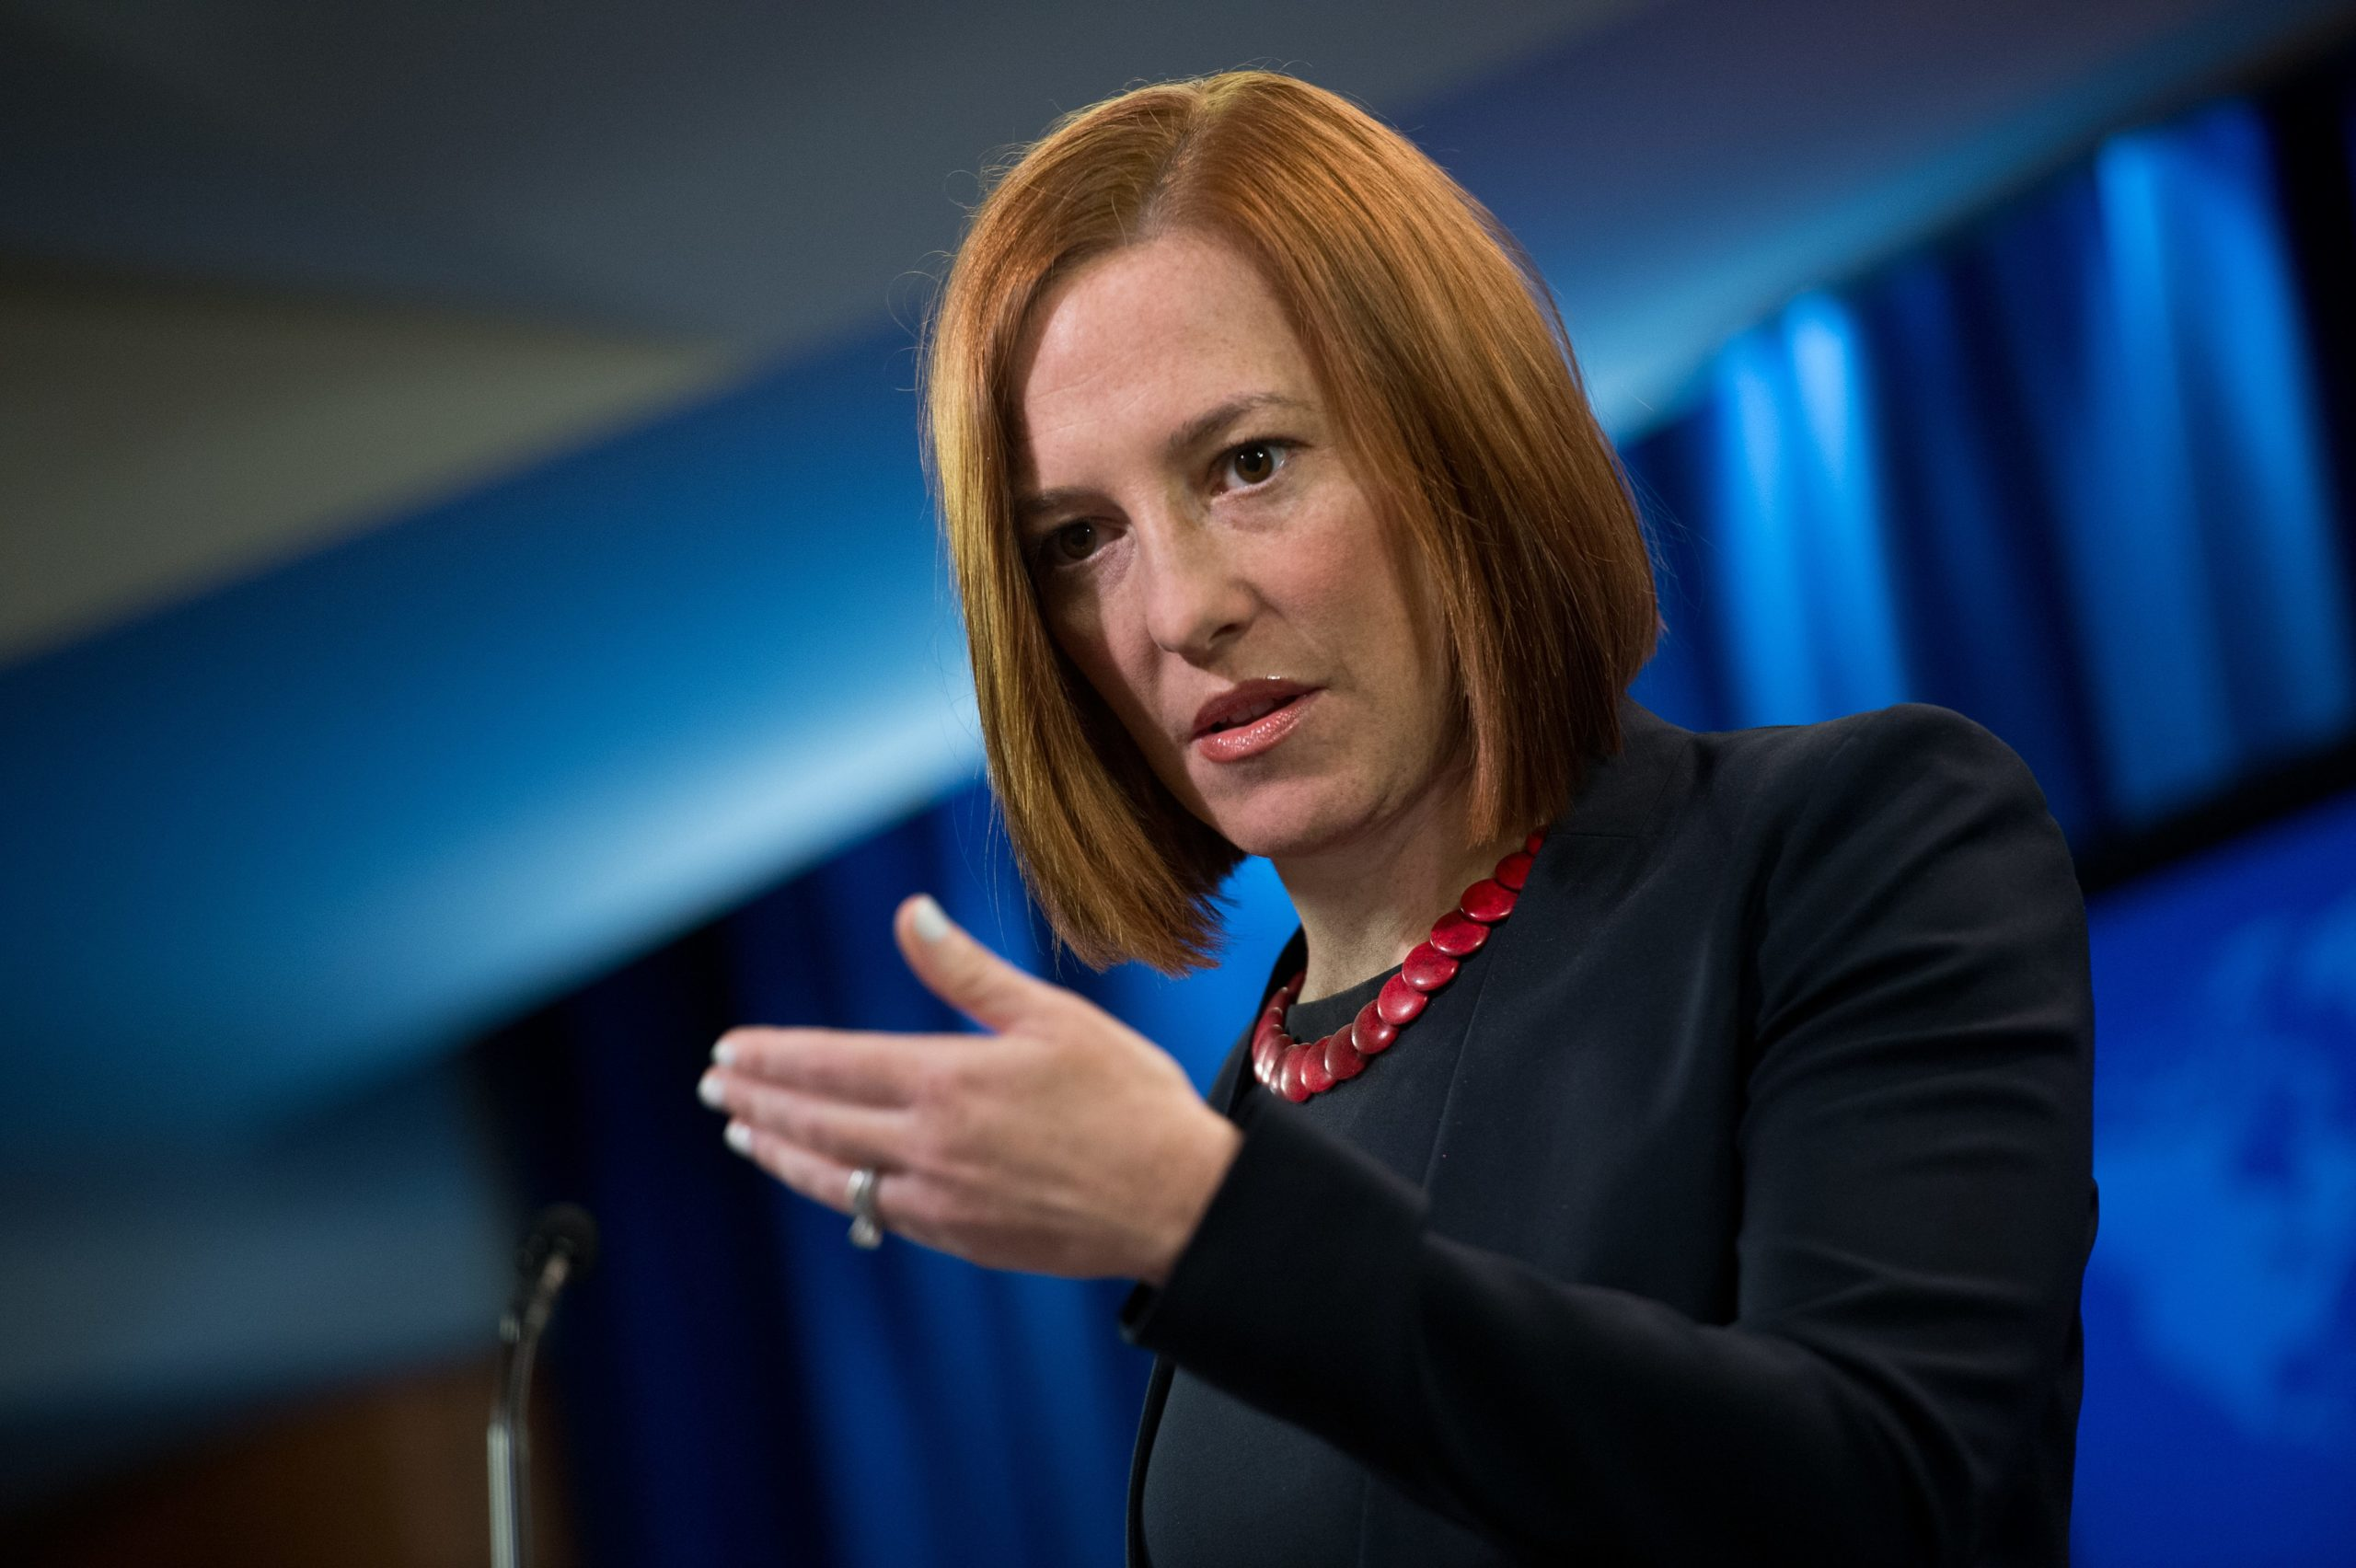 """US State Department spokeswoman Jen Psaki speaks at the daily briefing at the State Department in Washington,DC on March 10, 2014. Washington called on Russia to prove that it was willing to act on a series of US proposals aimed at ending the crisis over Ukraine. US Secretary of State John Kerry had laid out a number of ideas to his Russian counterpart Sergei Lavrov and is prepared to take part in further talks """"if and when we see concrete evidence that Russia is prepared to engage on these proposals,"""" Psaki said. AFP PHOTO/Nicholas KAMM (Photo by Nicholas KAMM / AFP) (Photo by NICHOLAS KAMM/AFP via Getty Images)"""